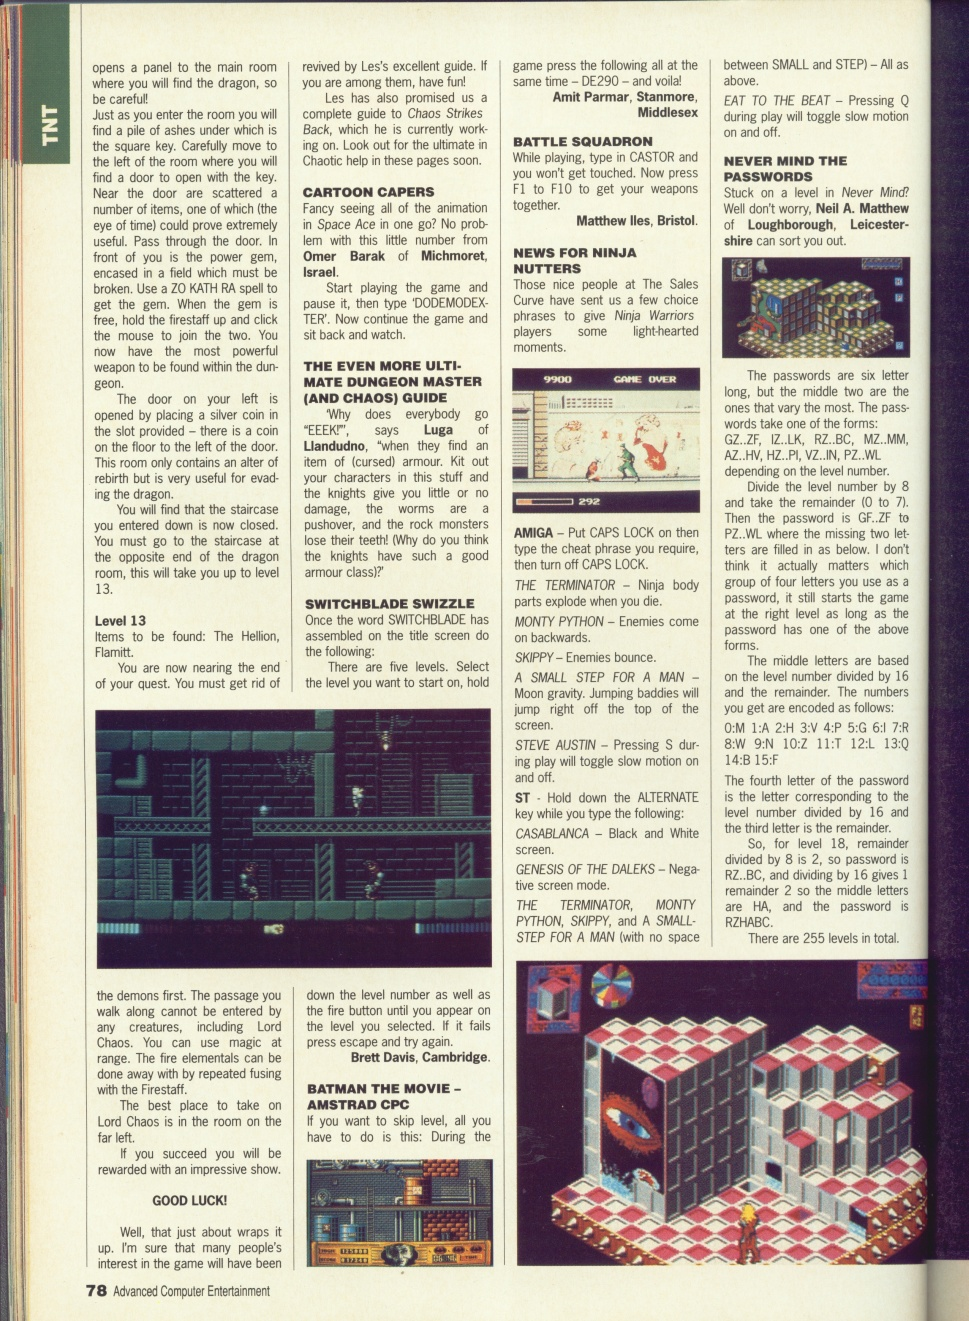 Dungeon Master Guide published in British magazine 'Advanced Computer Entertainment', Issue #32 May 1990, Page 78